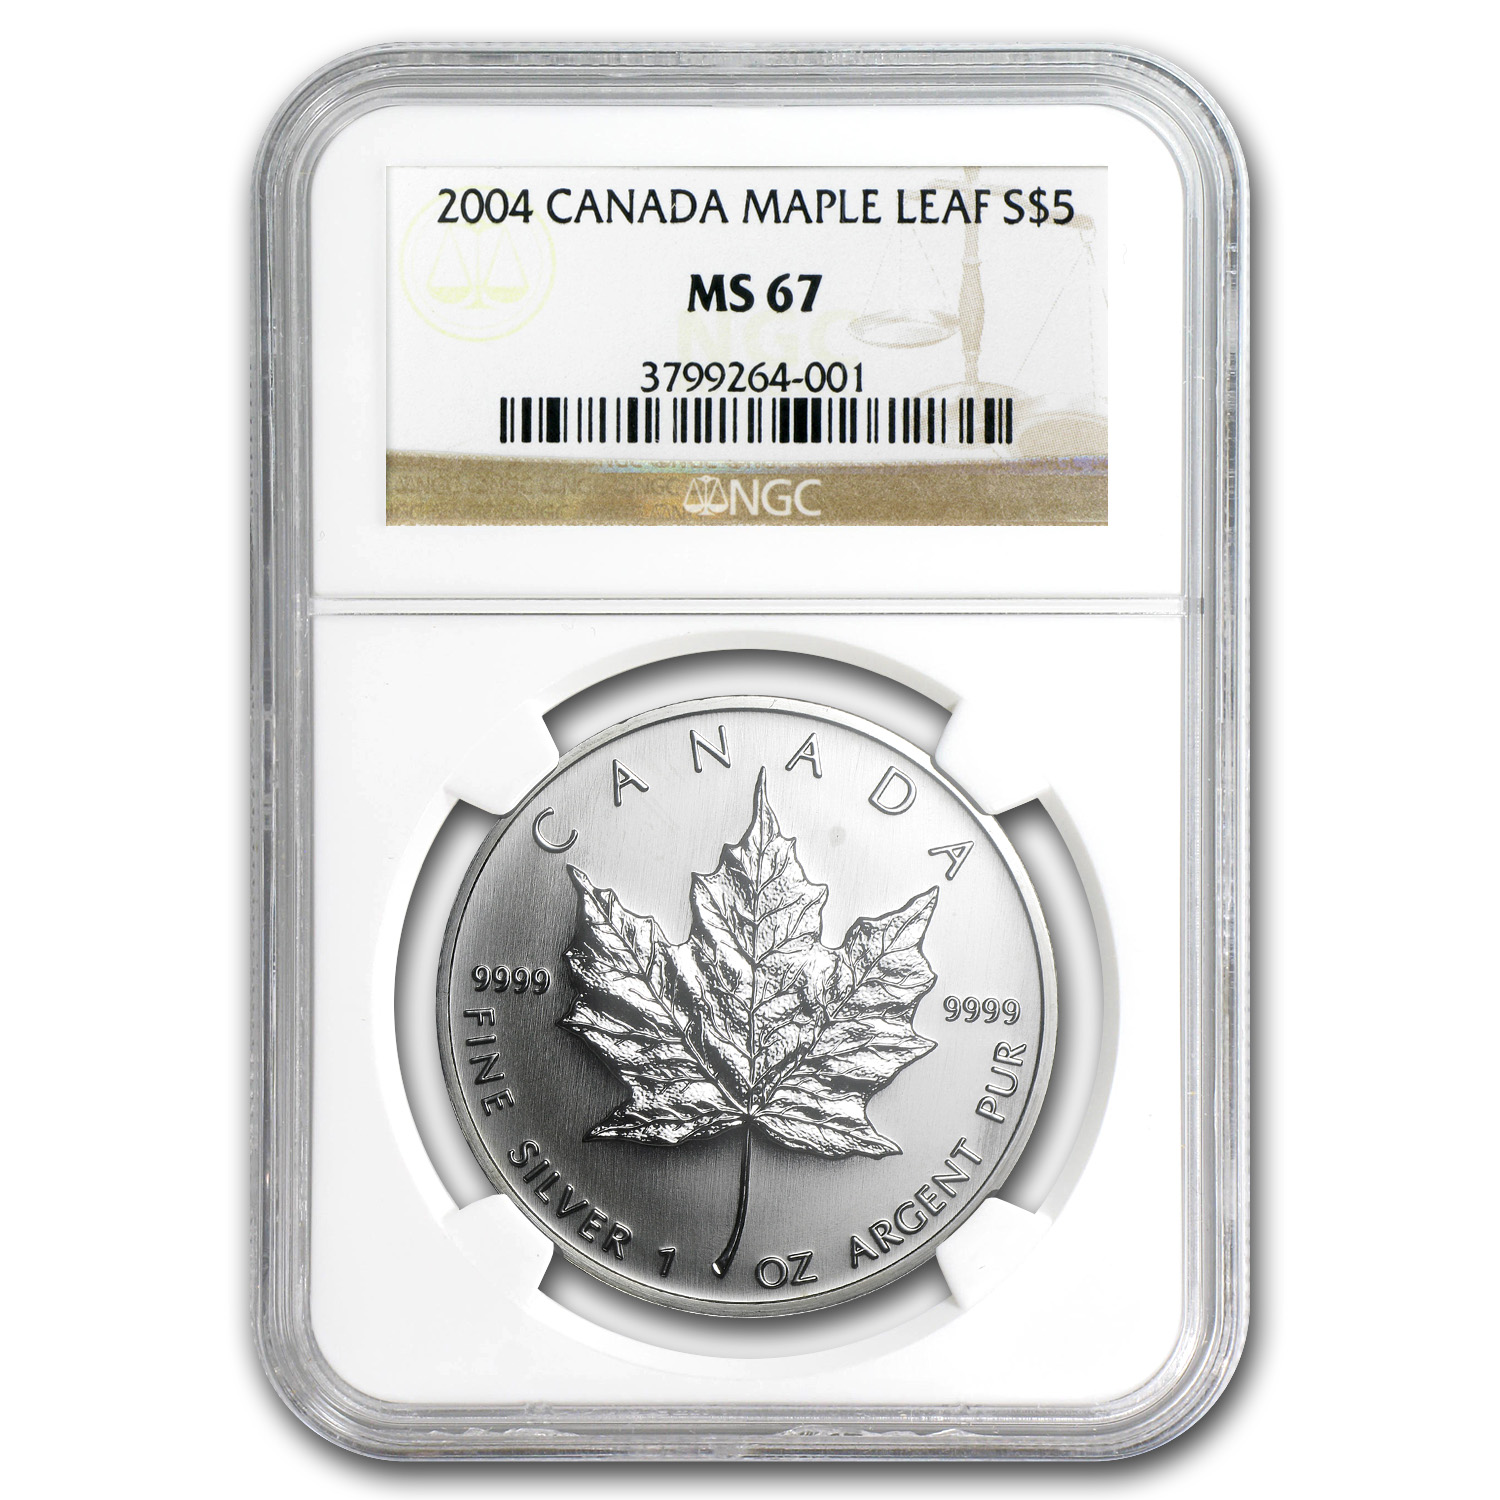 2004 Canada 1 oz Silver Maple Leaf MS-67 NGC